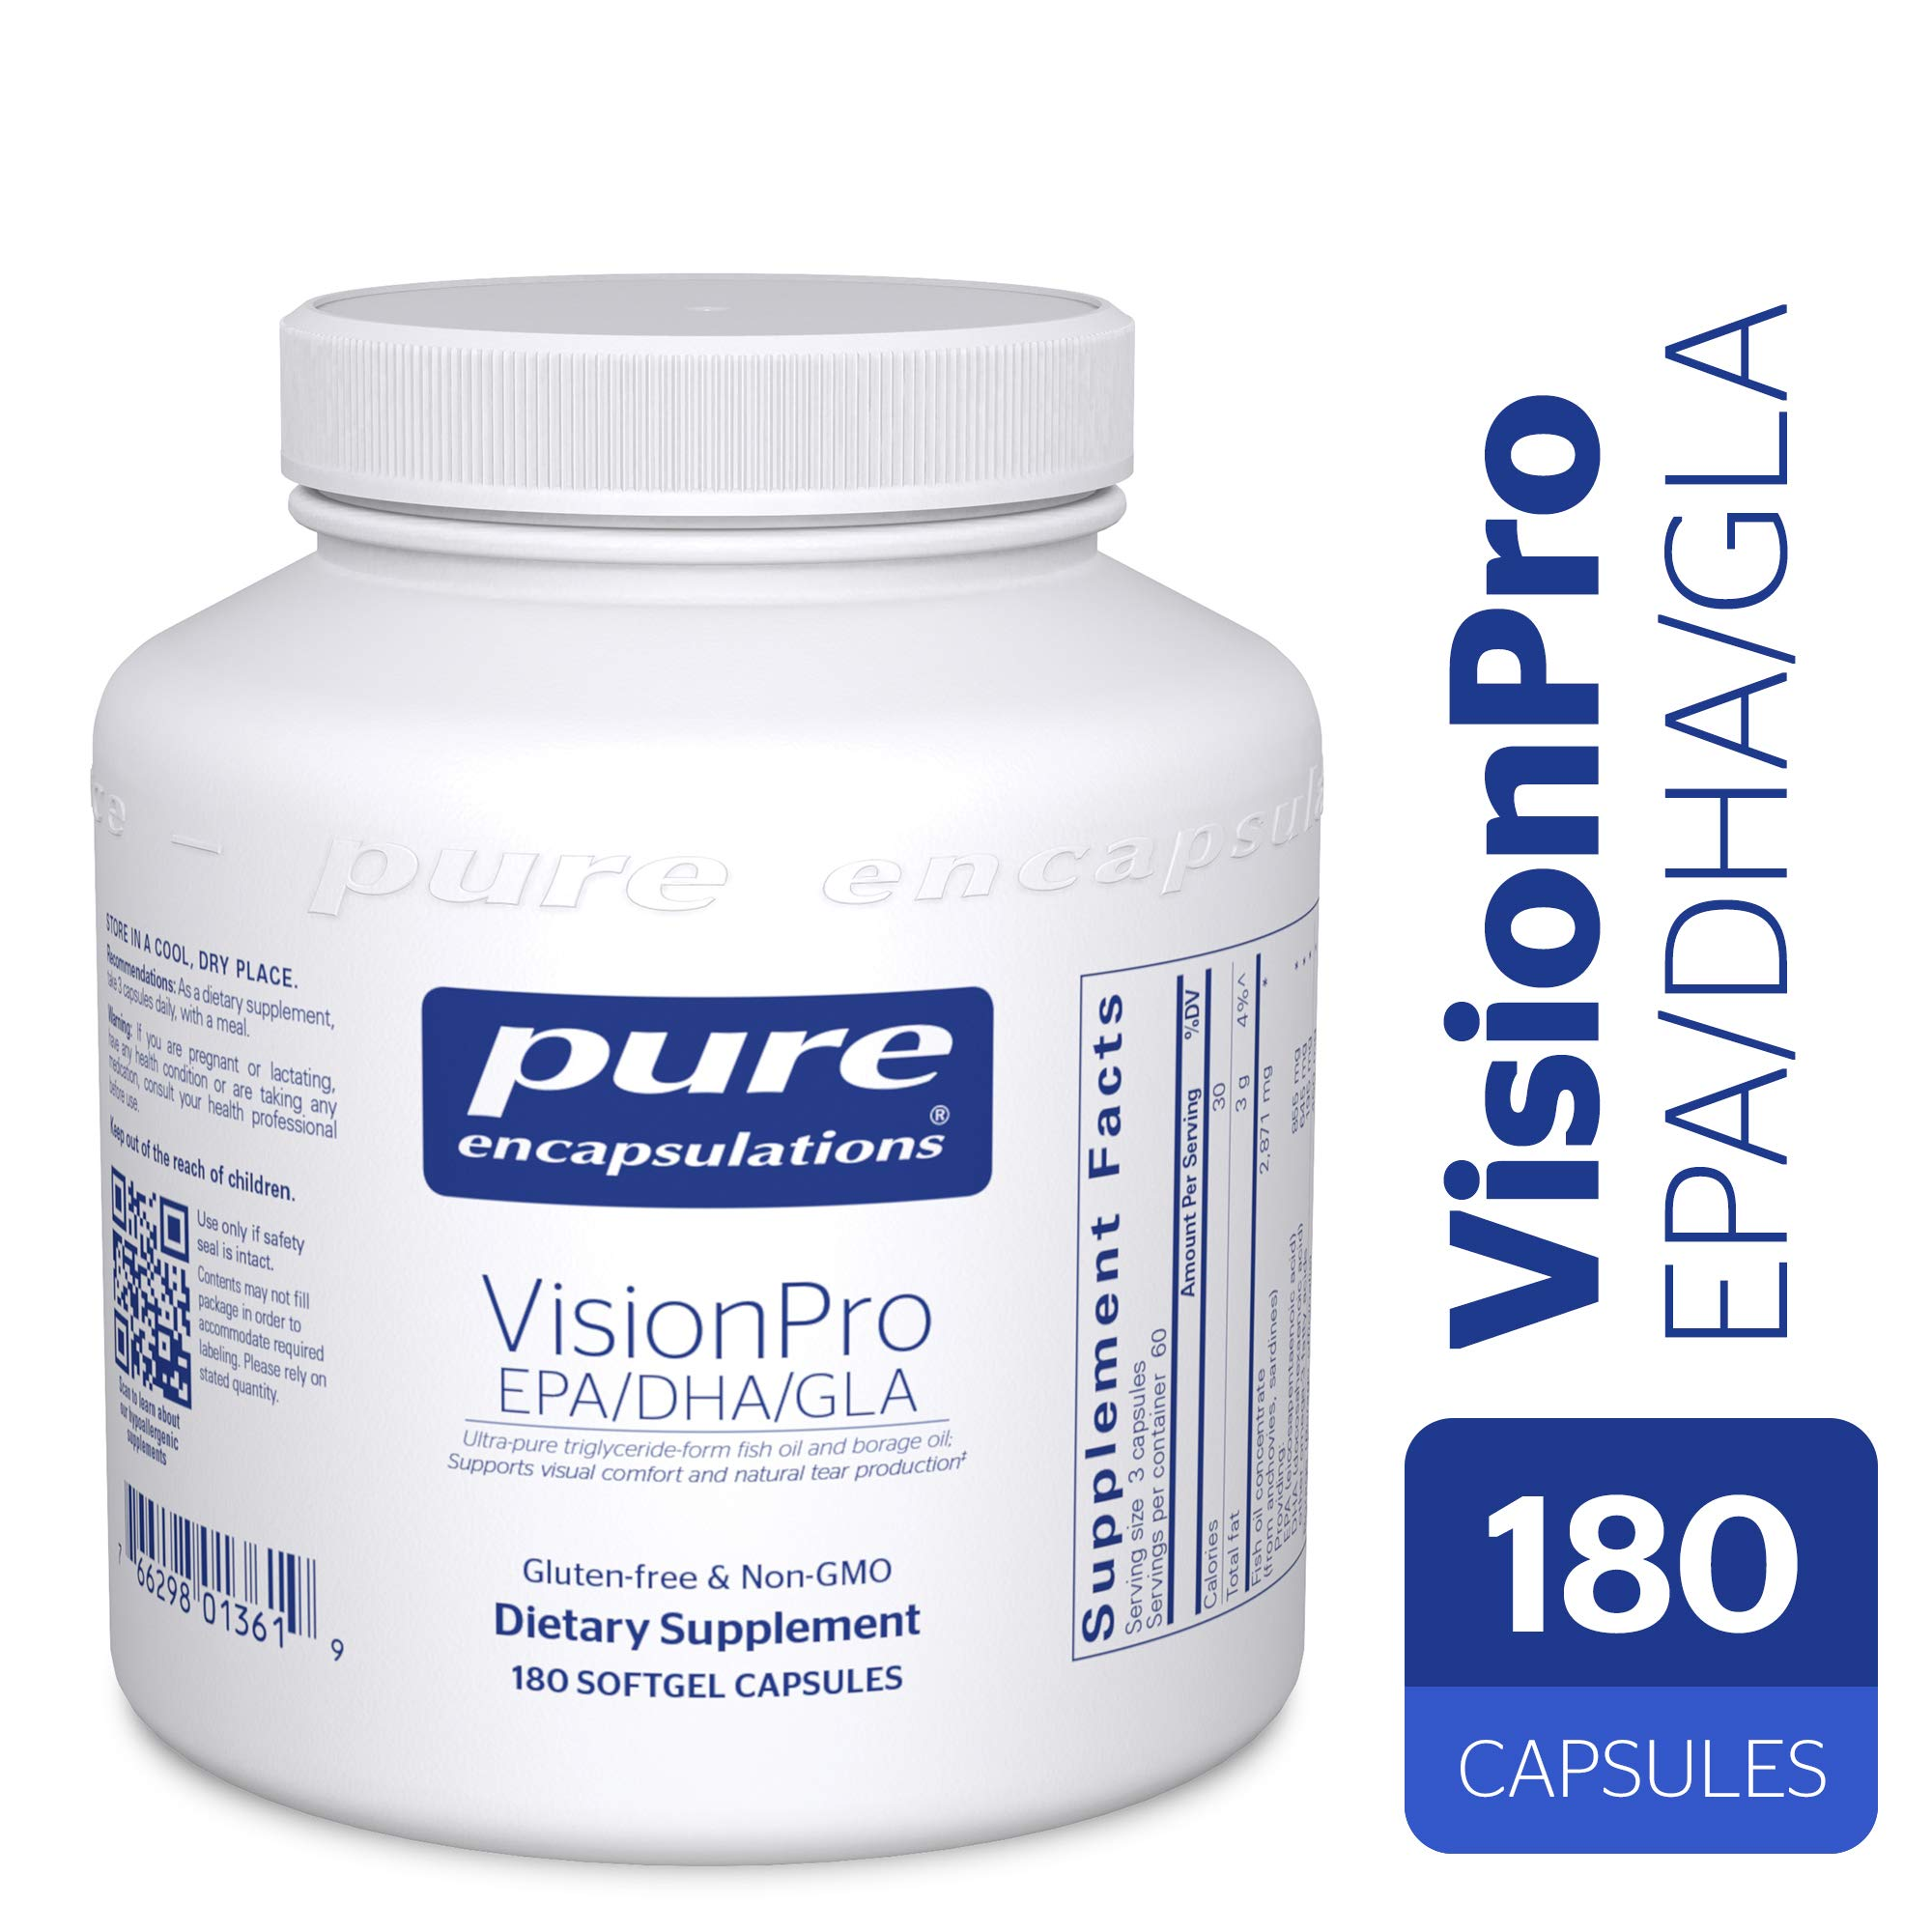 Pure Encapsulations - VisionPro EPA/DHA/GLA - Dietary Supplement to Support Natural Tear Production and Retention of Eye Moisture* - 180 Softgel Capsules by Pure Encapsulations